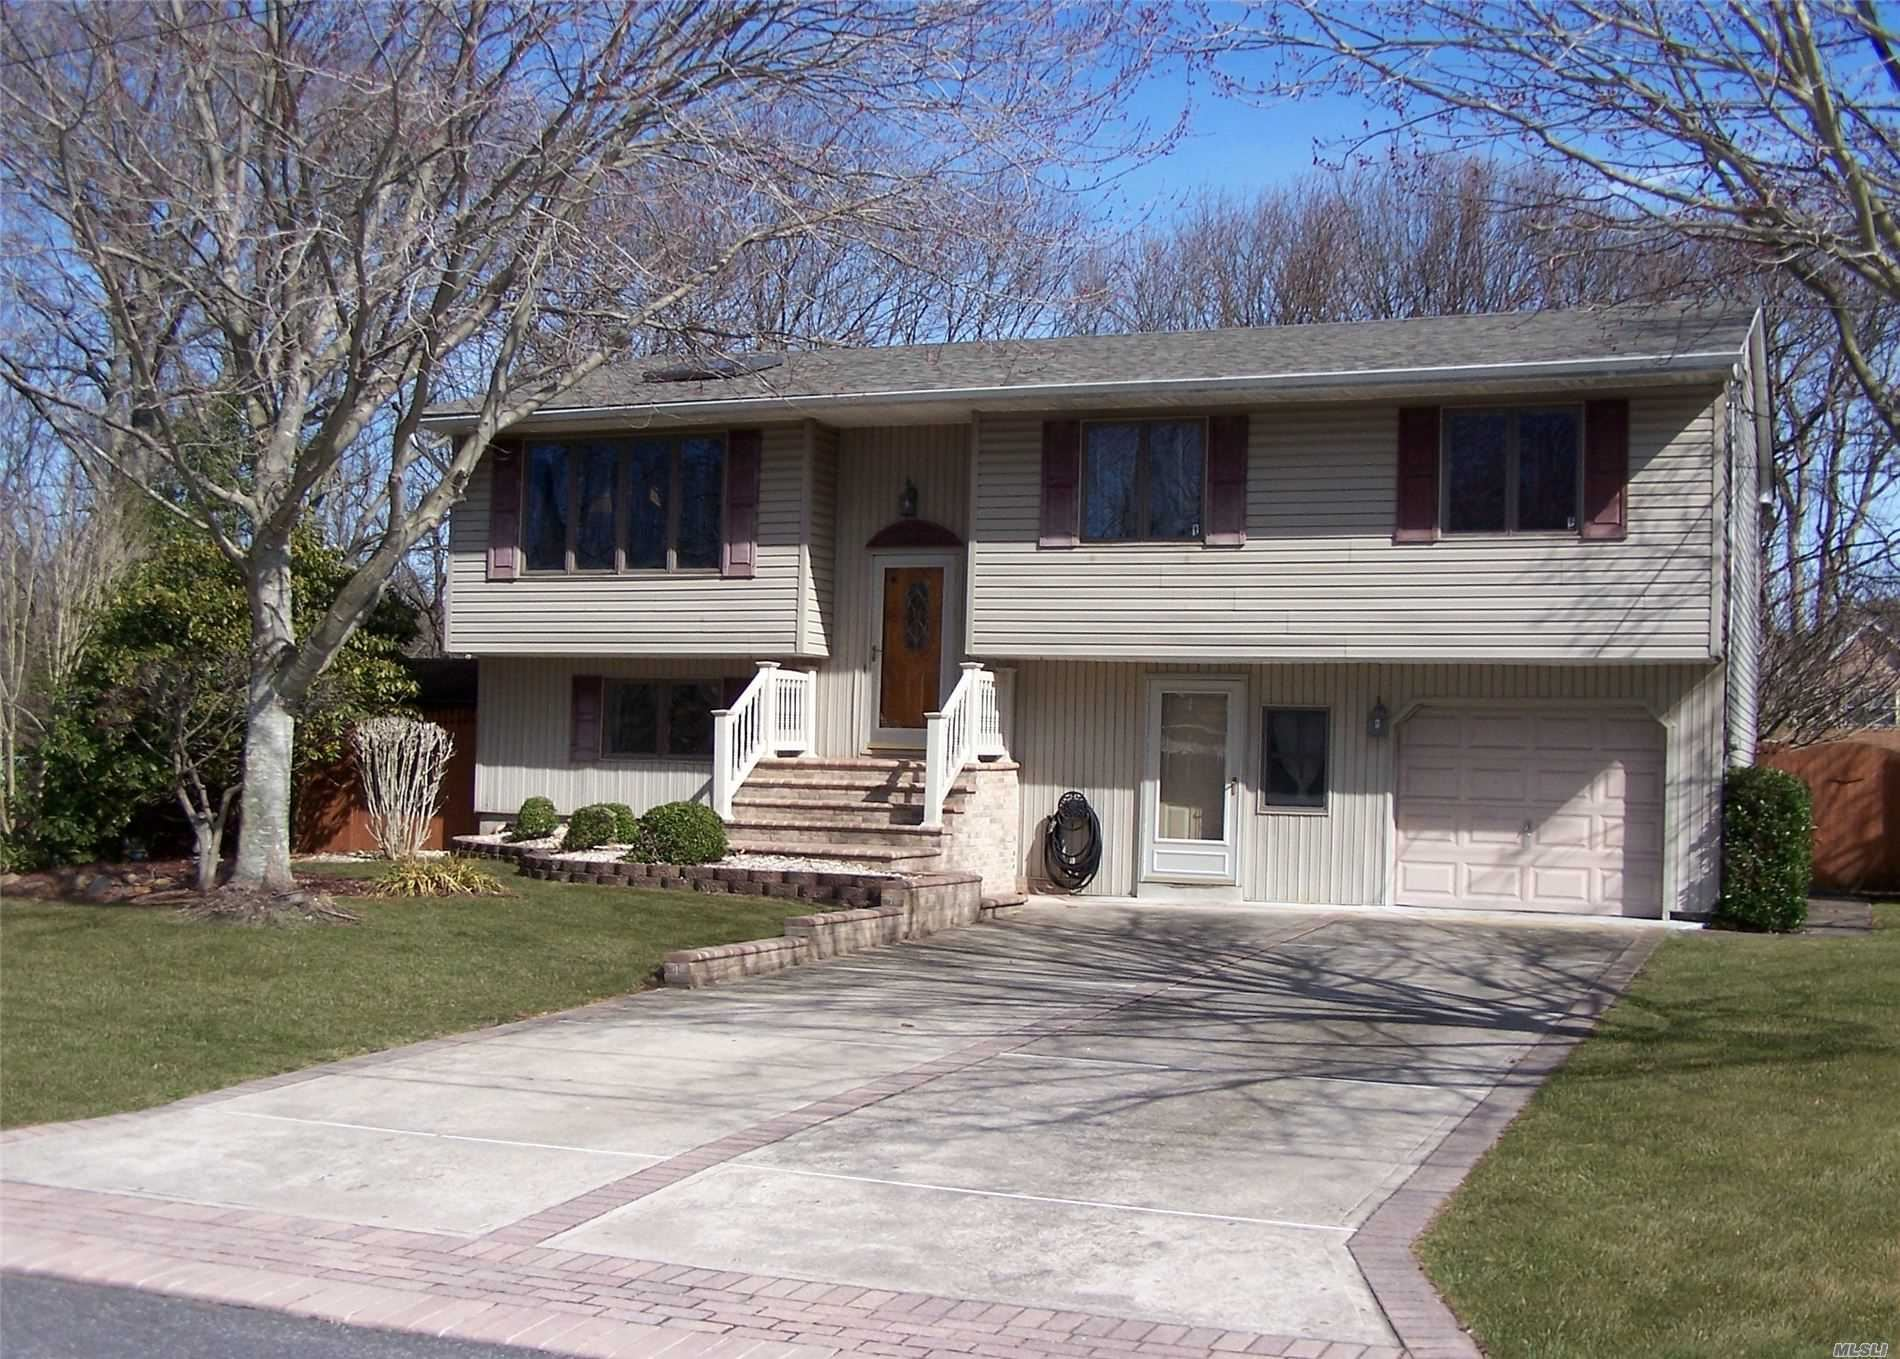 67 March Ct, Selden, NY 11784 - MLS#: 3212329